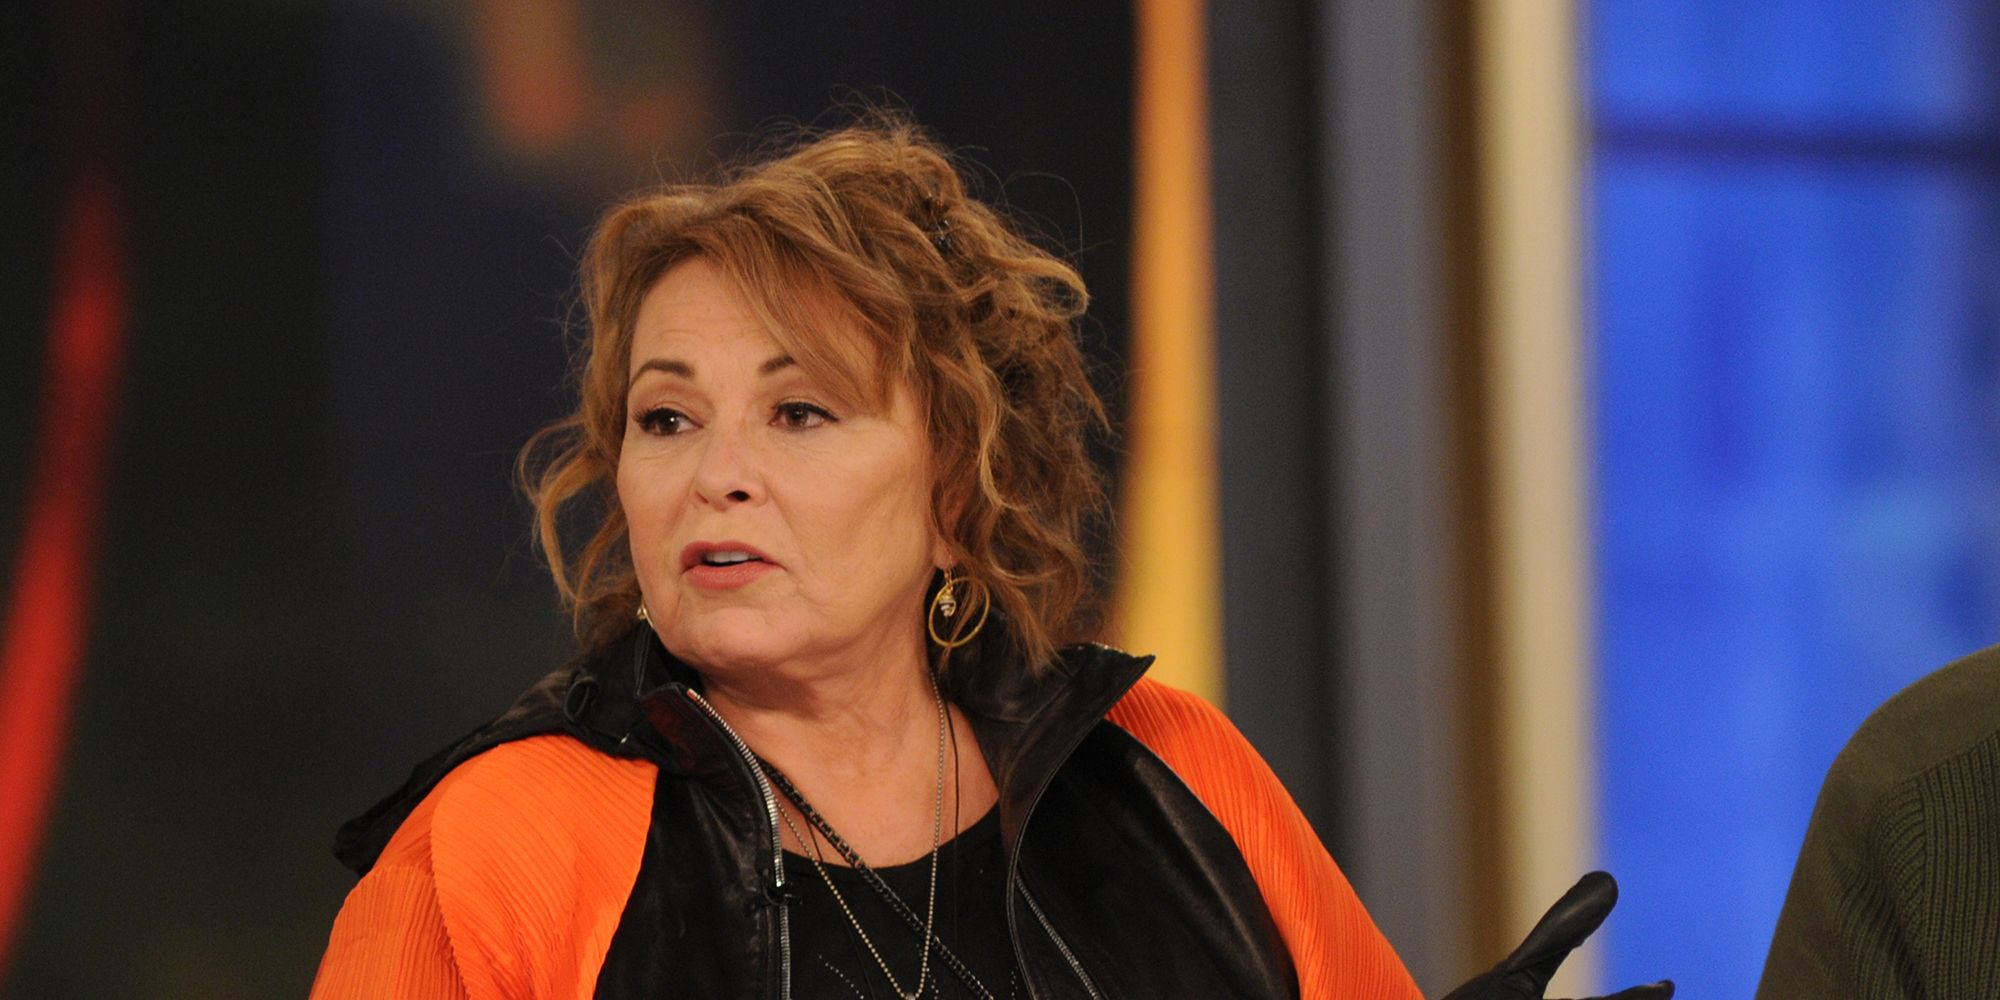 Roseanne Barr on The View, March 2018